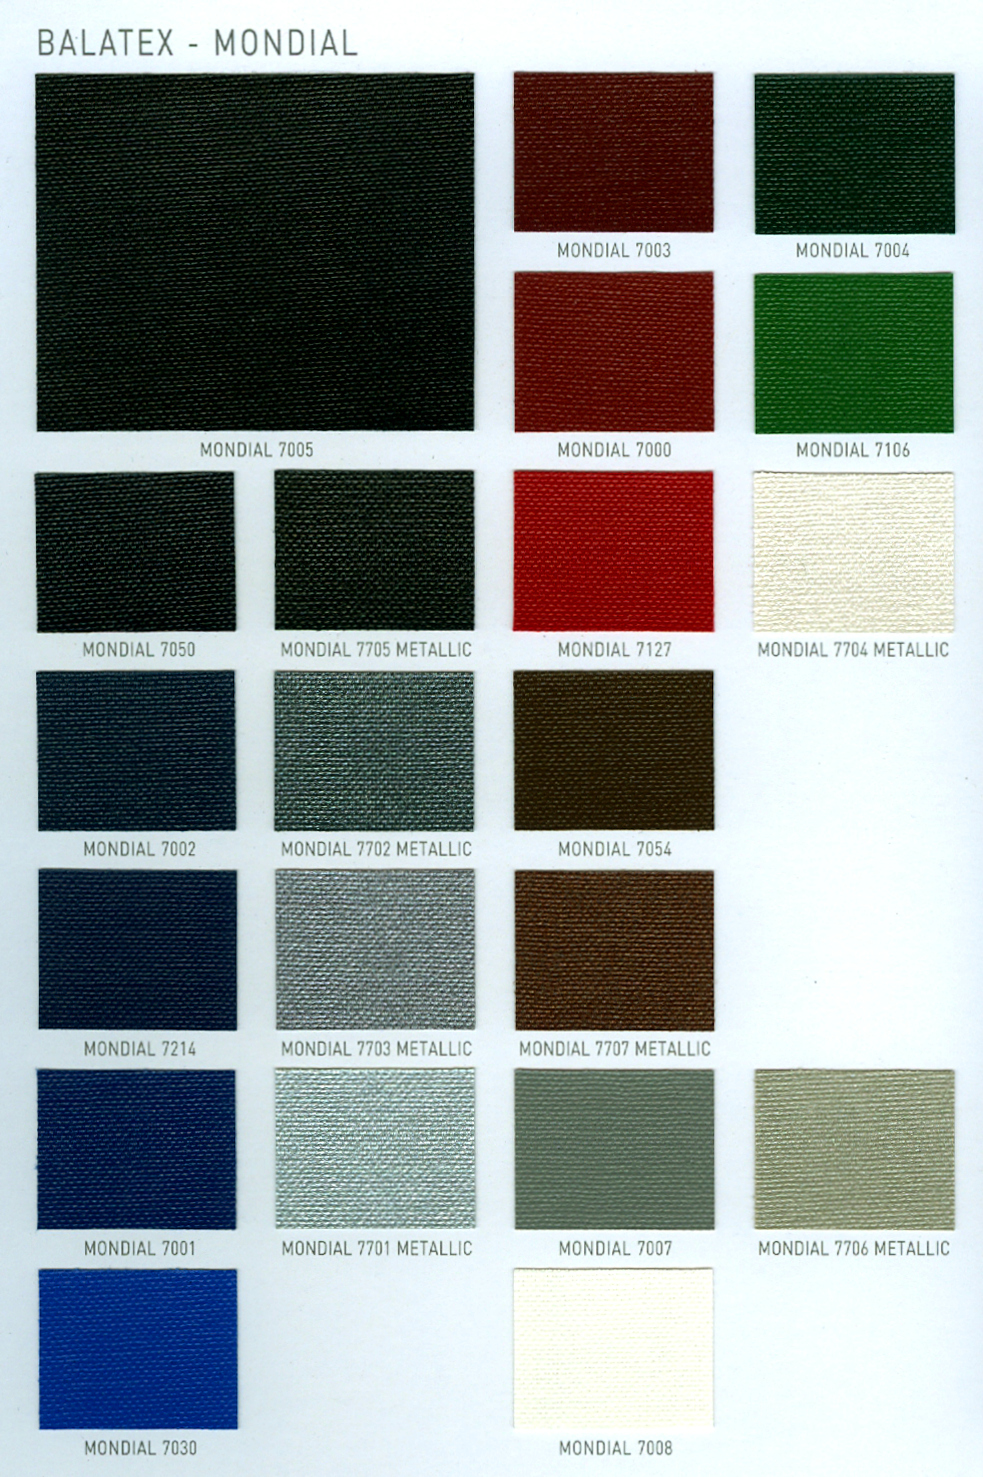 Mondial / Mondial metalic library buckram ύφασμα βιβλιοδεσίας